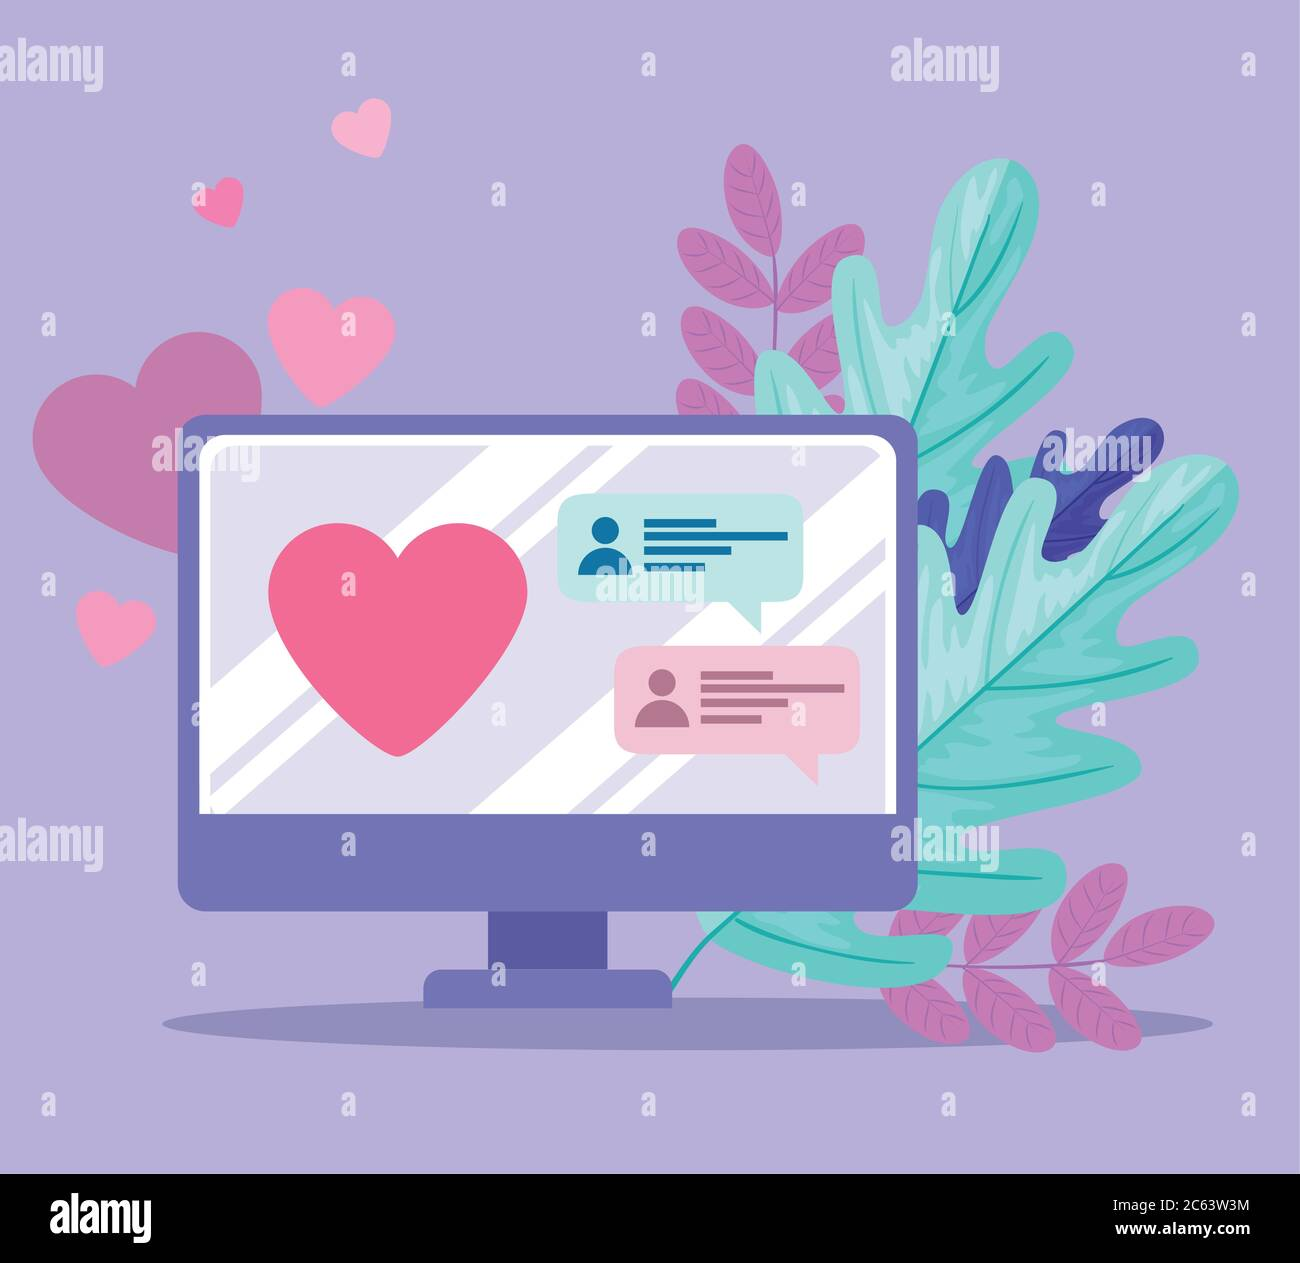 online dating service application, computer with heart, chat looking for couple, social media, virtual relationship communication concept Stock Vector